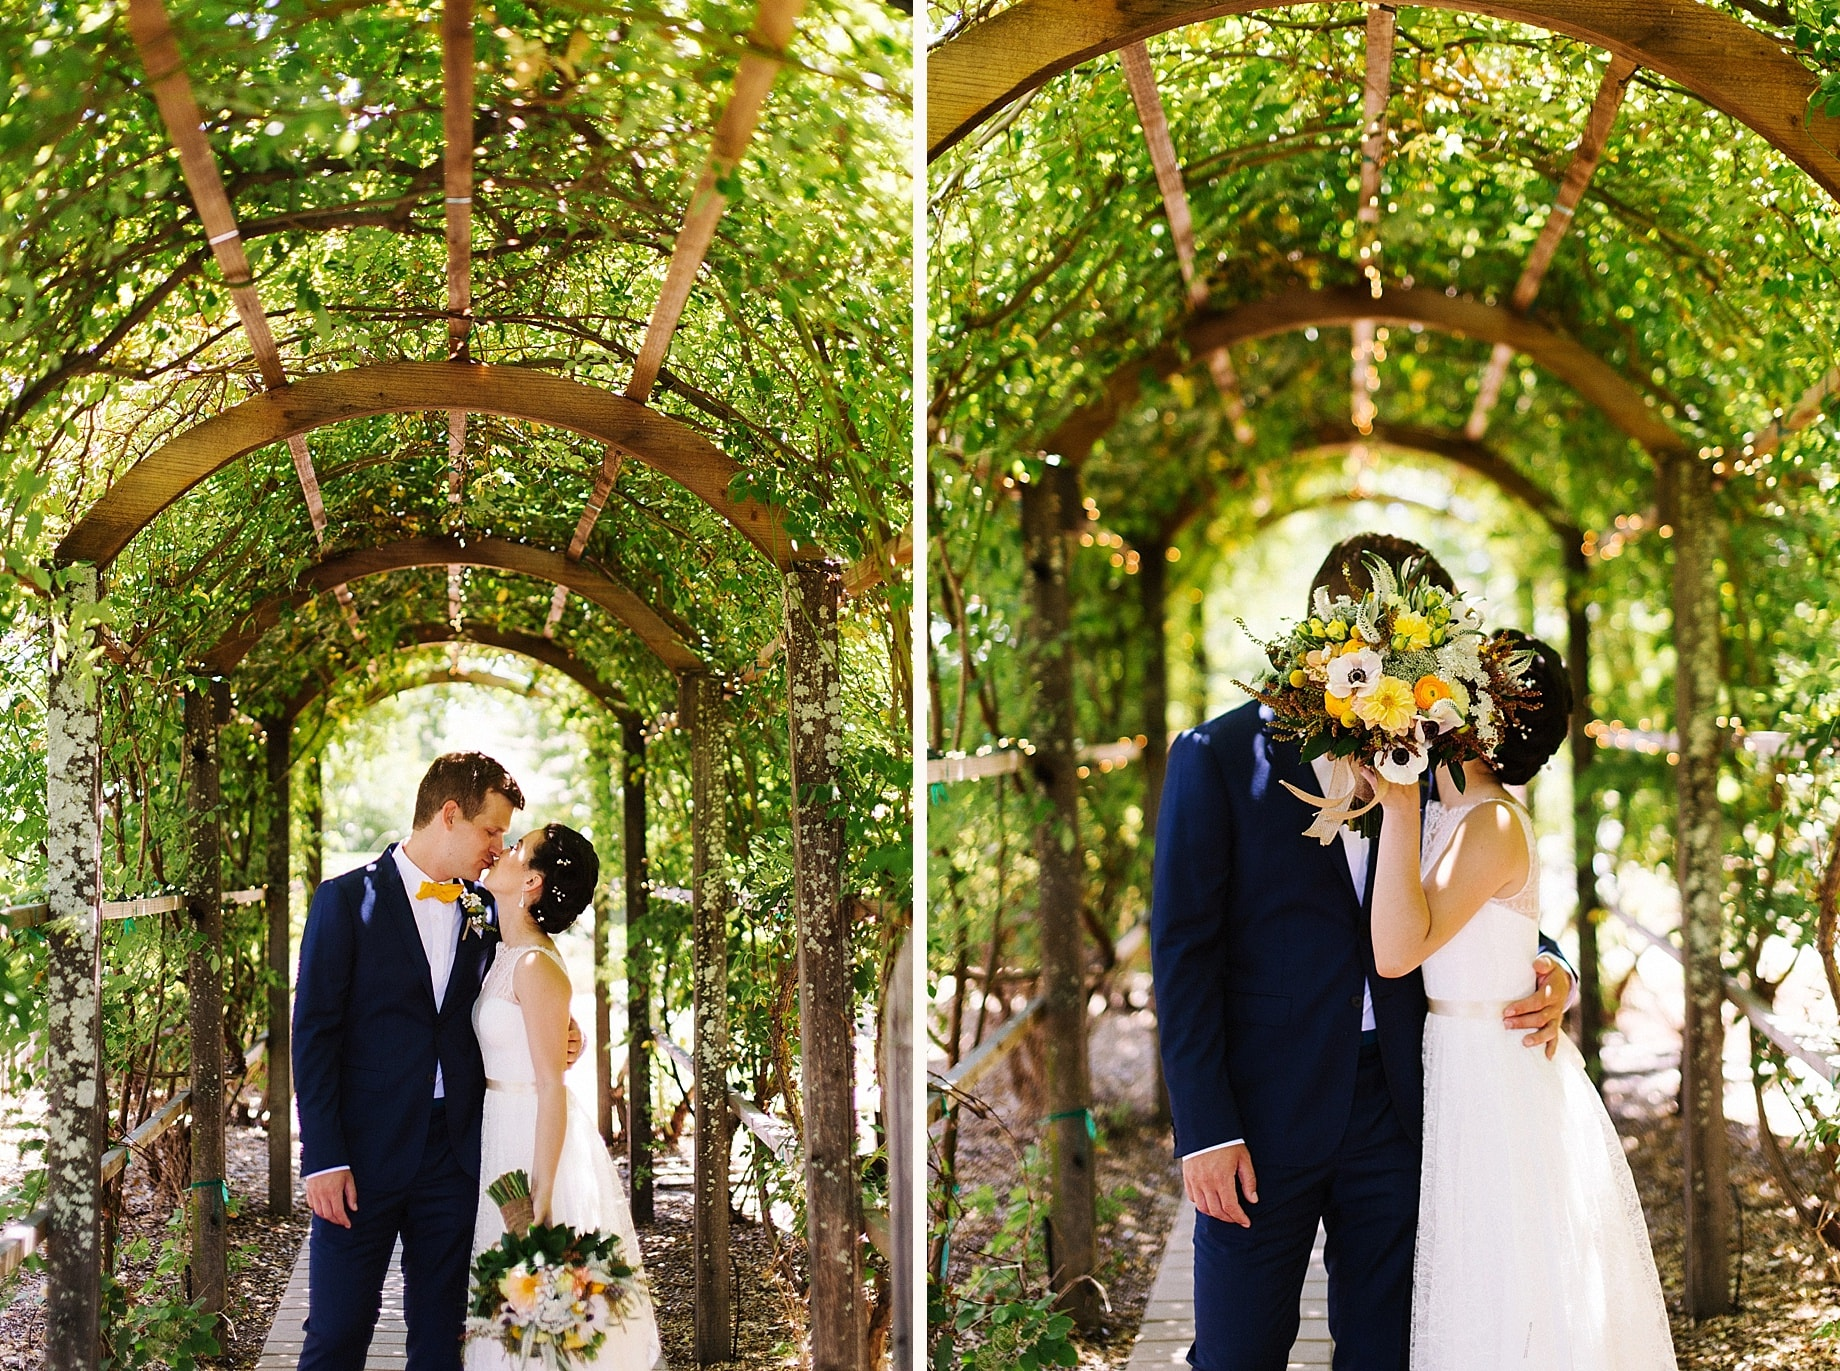 Tiffany And Drew's Wedding At The Healdsburg Country